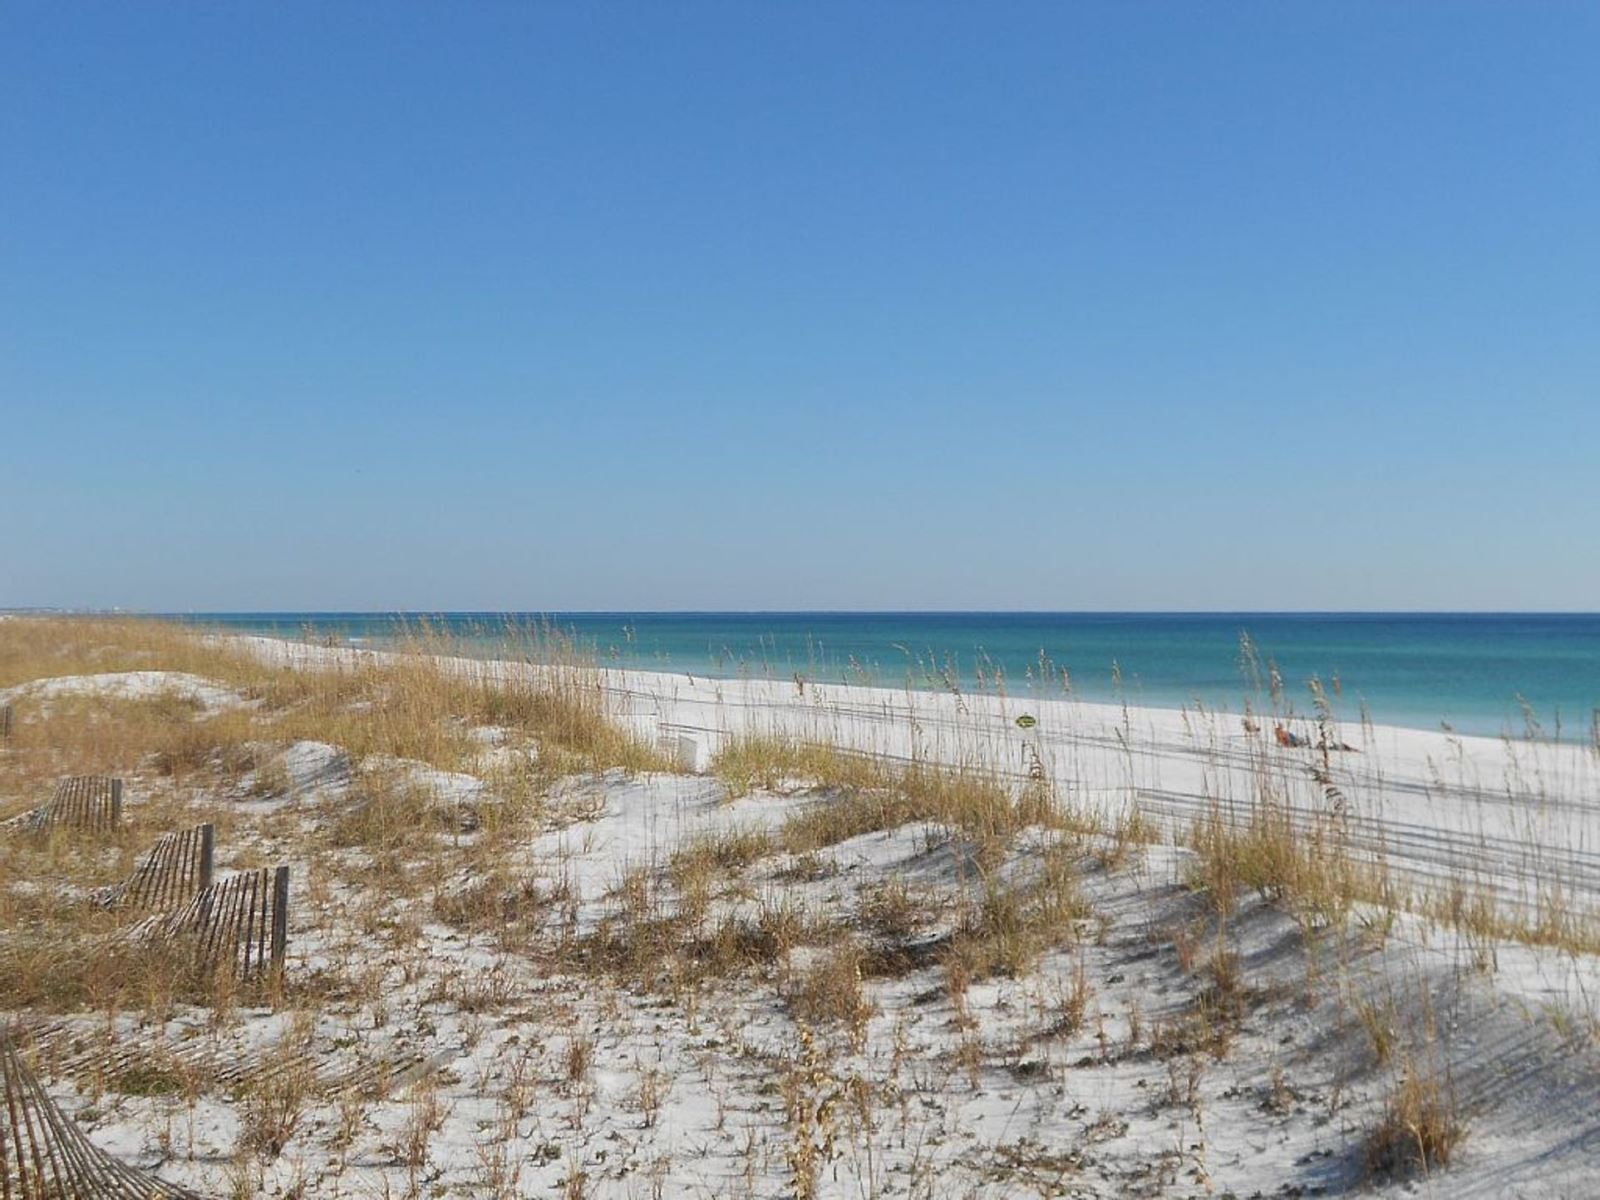 Private beach at Maravilla in Destin. Enjoy 2000 feet of private beach for Maravilla guests only!